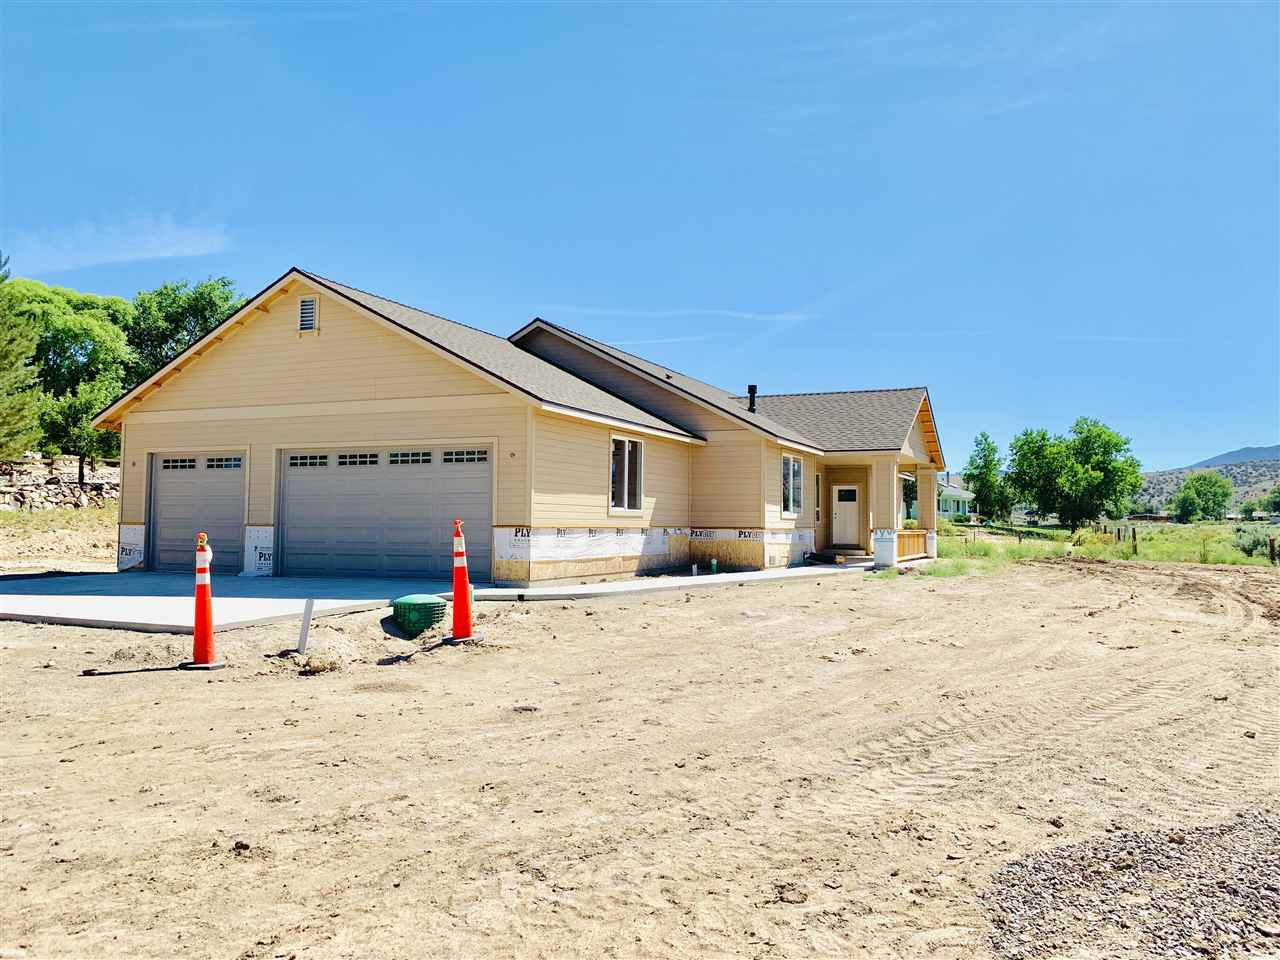 Single Family Homes for Active at 815 Horseman Gardnerville, Nevada 89410 United States